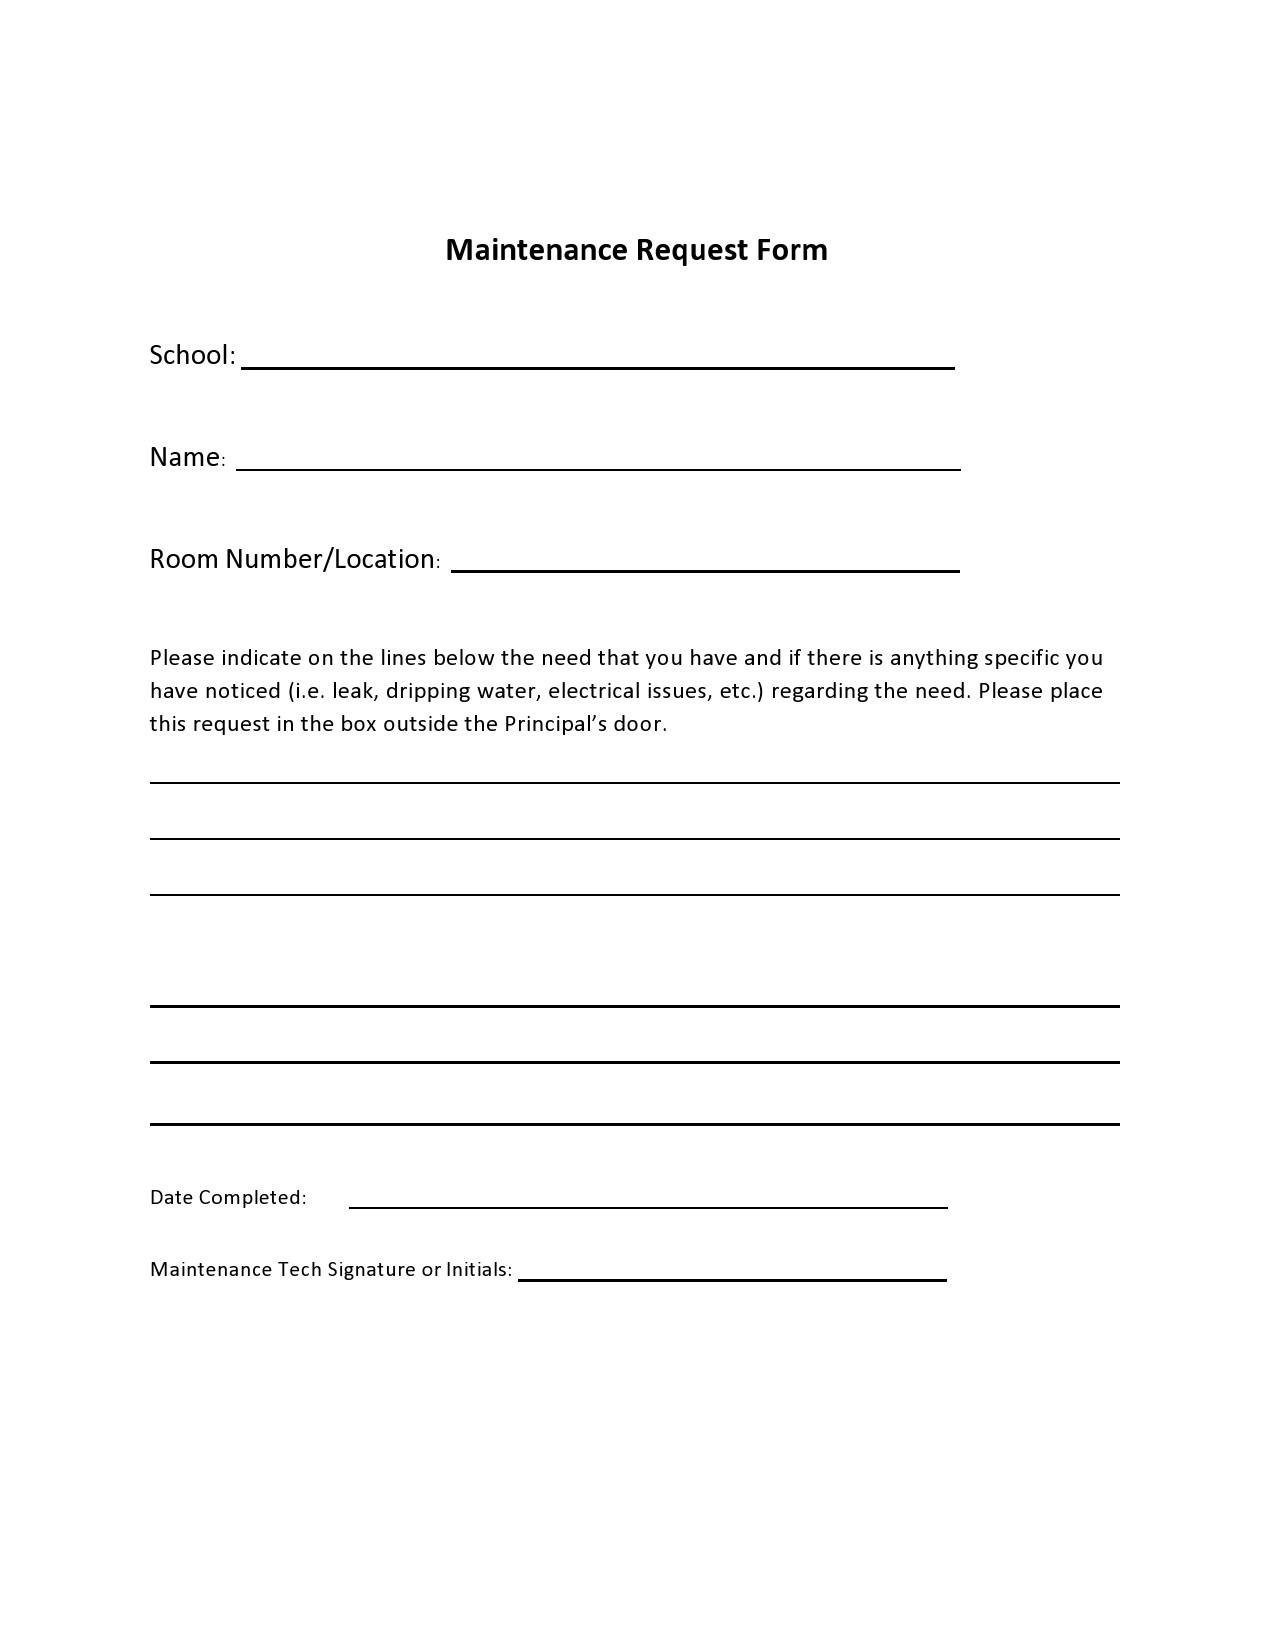 Free maintenance request form 42